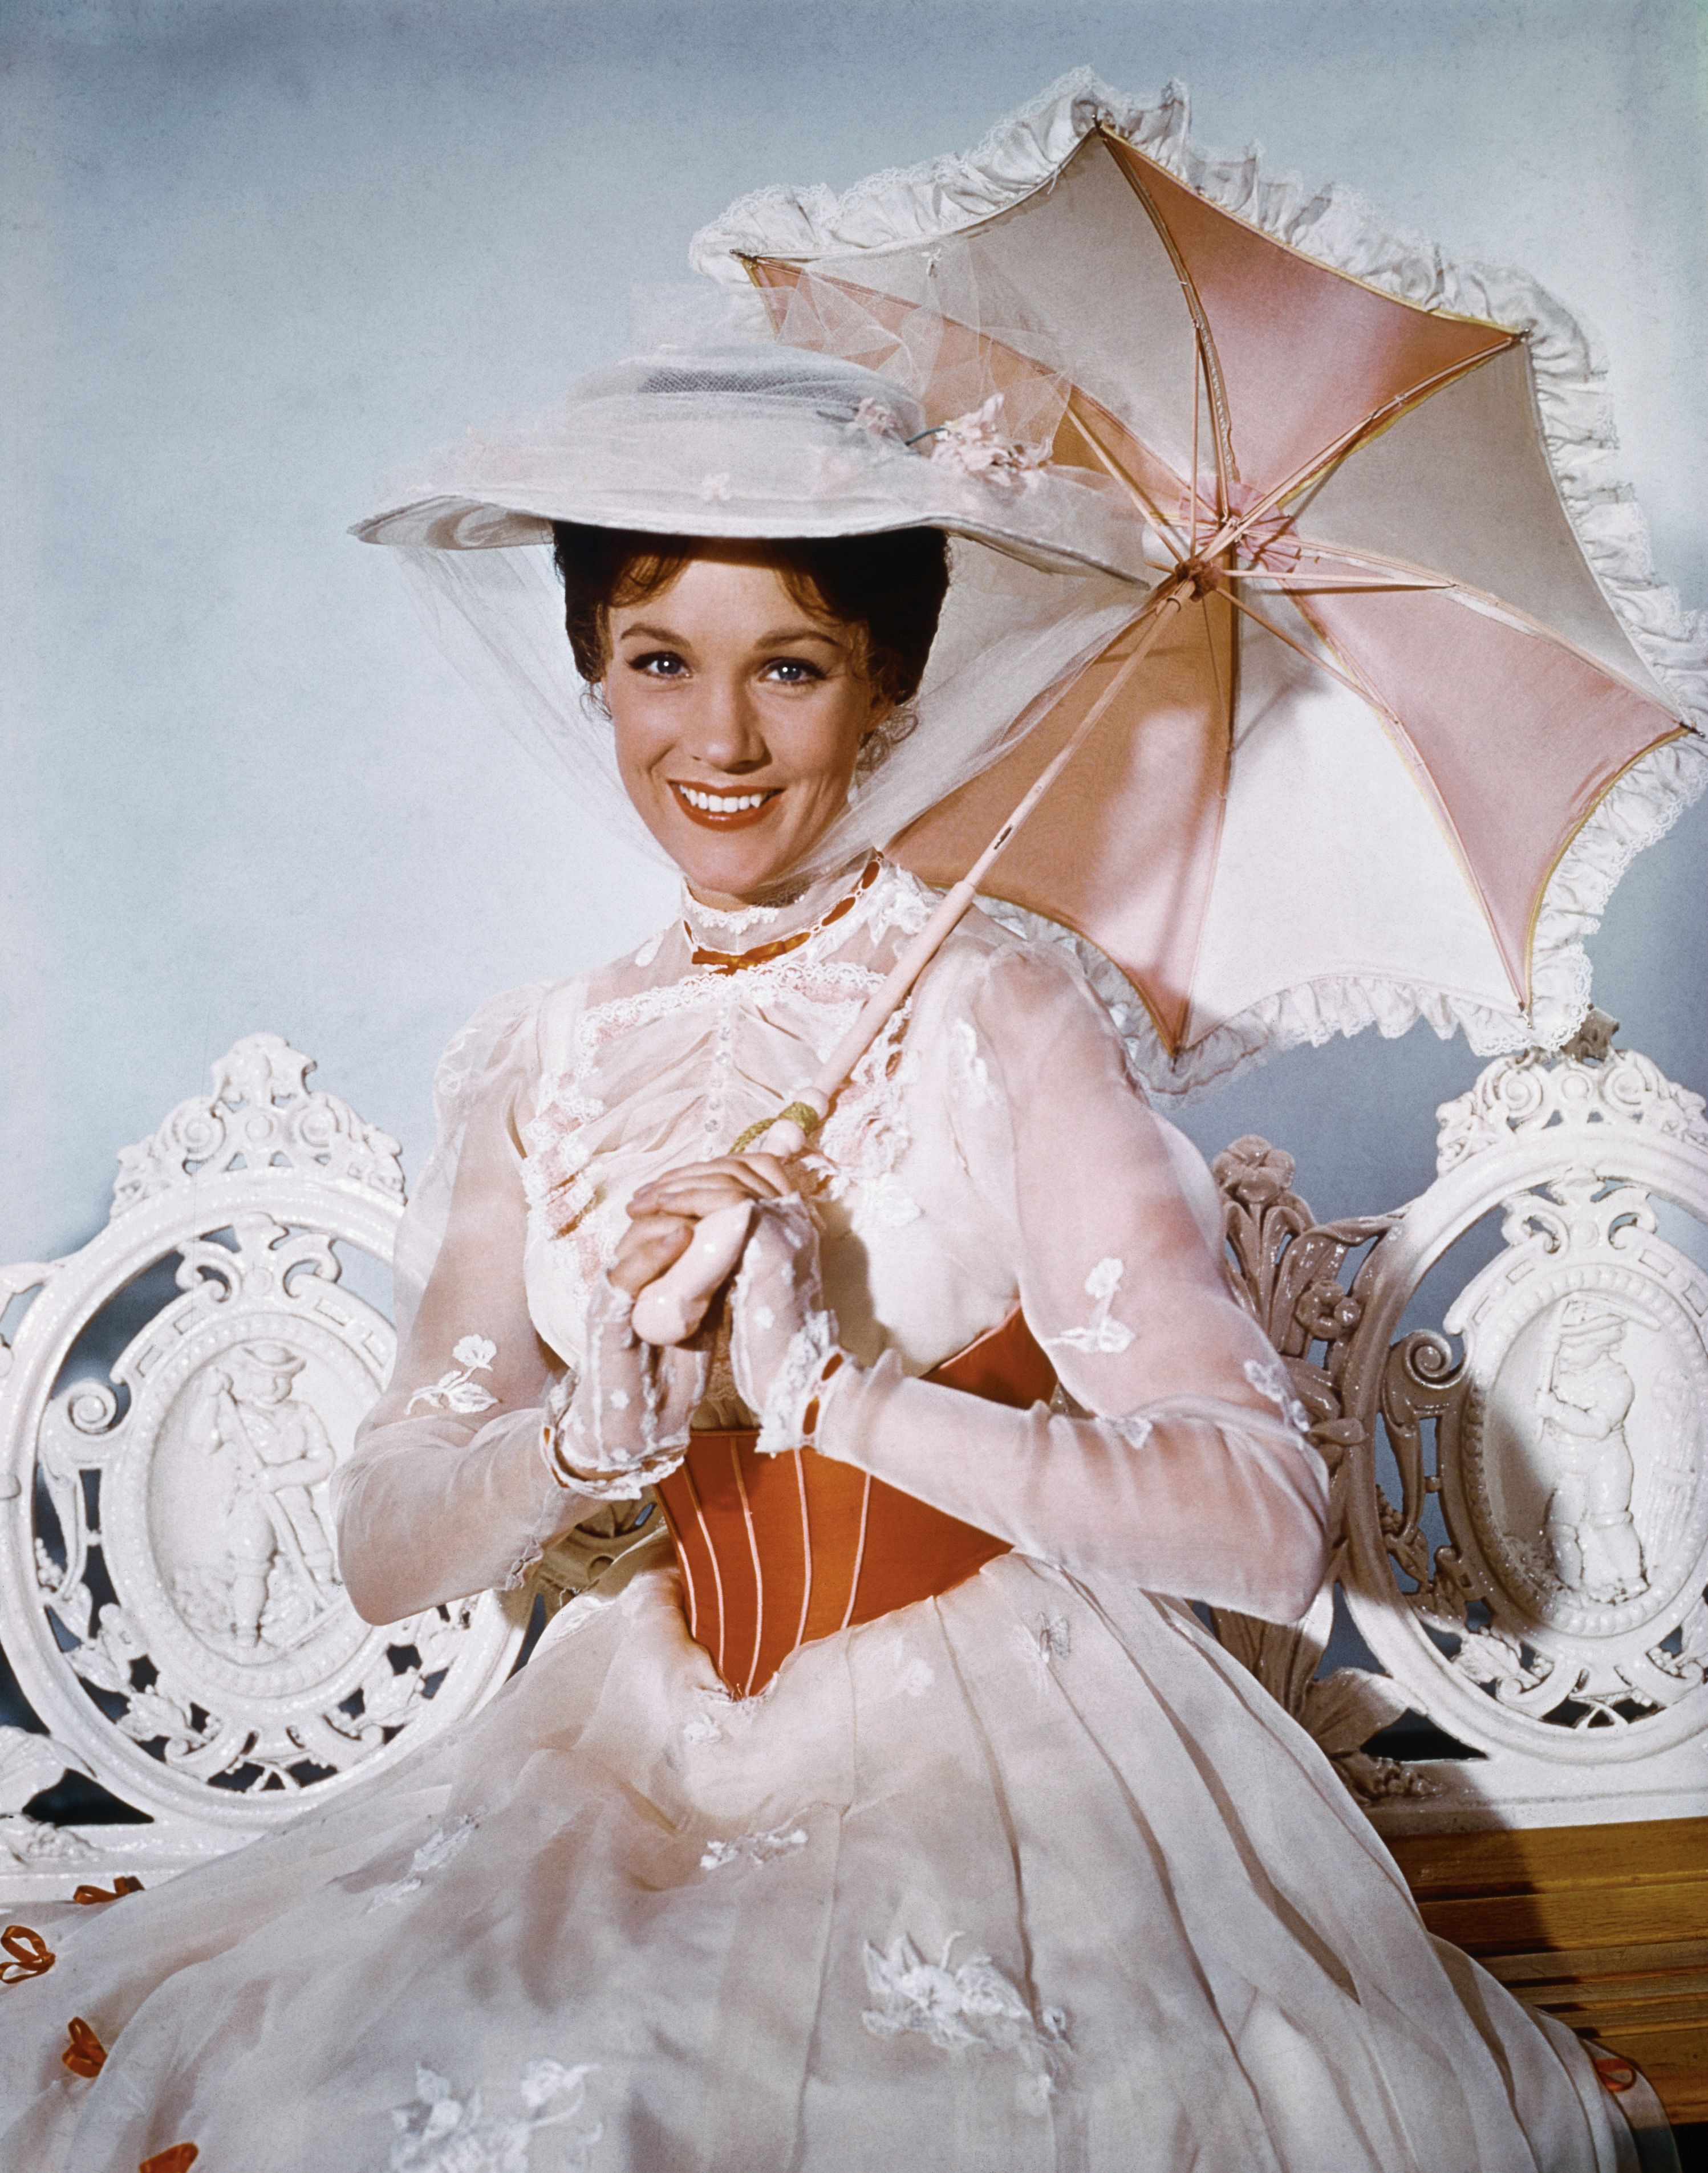 Julie Andrews posing as her character, Mary Poppins, for a photoshoot on February 18, 1965. | Photo: Getty Images